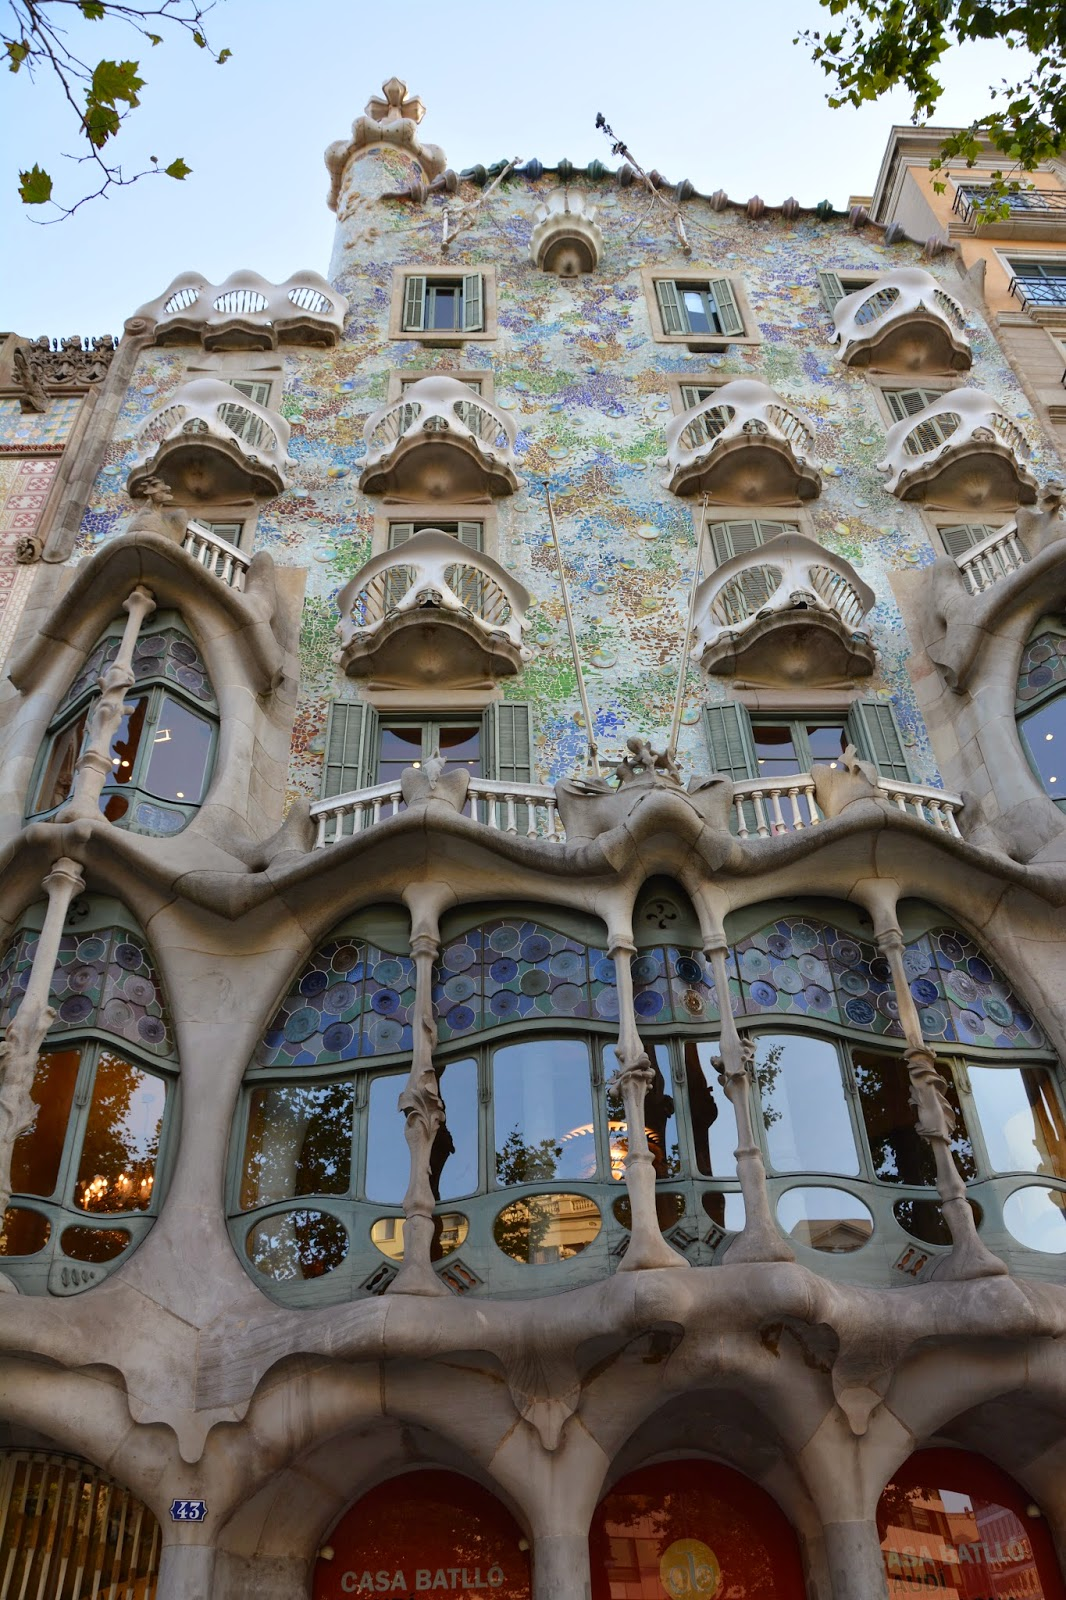 Casa Batllo Spain Antoni Gaudi Guadi Catalan architect